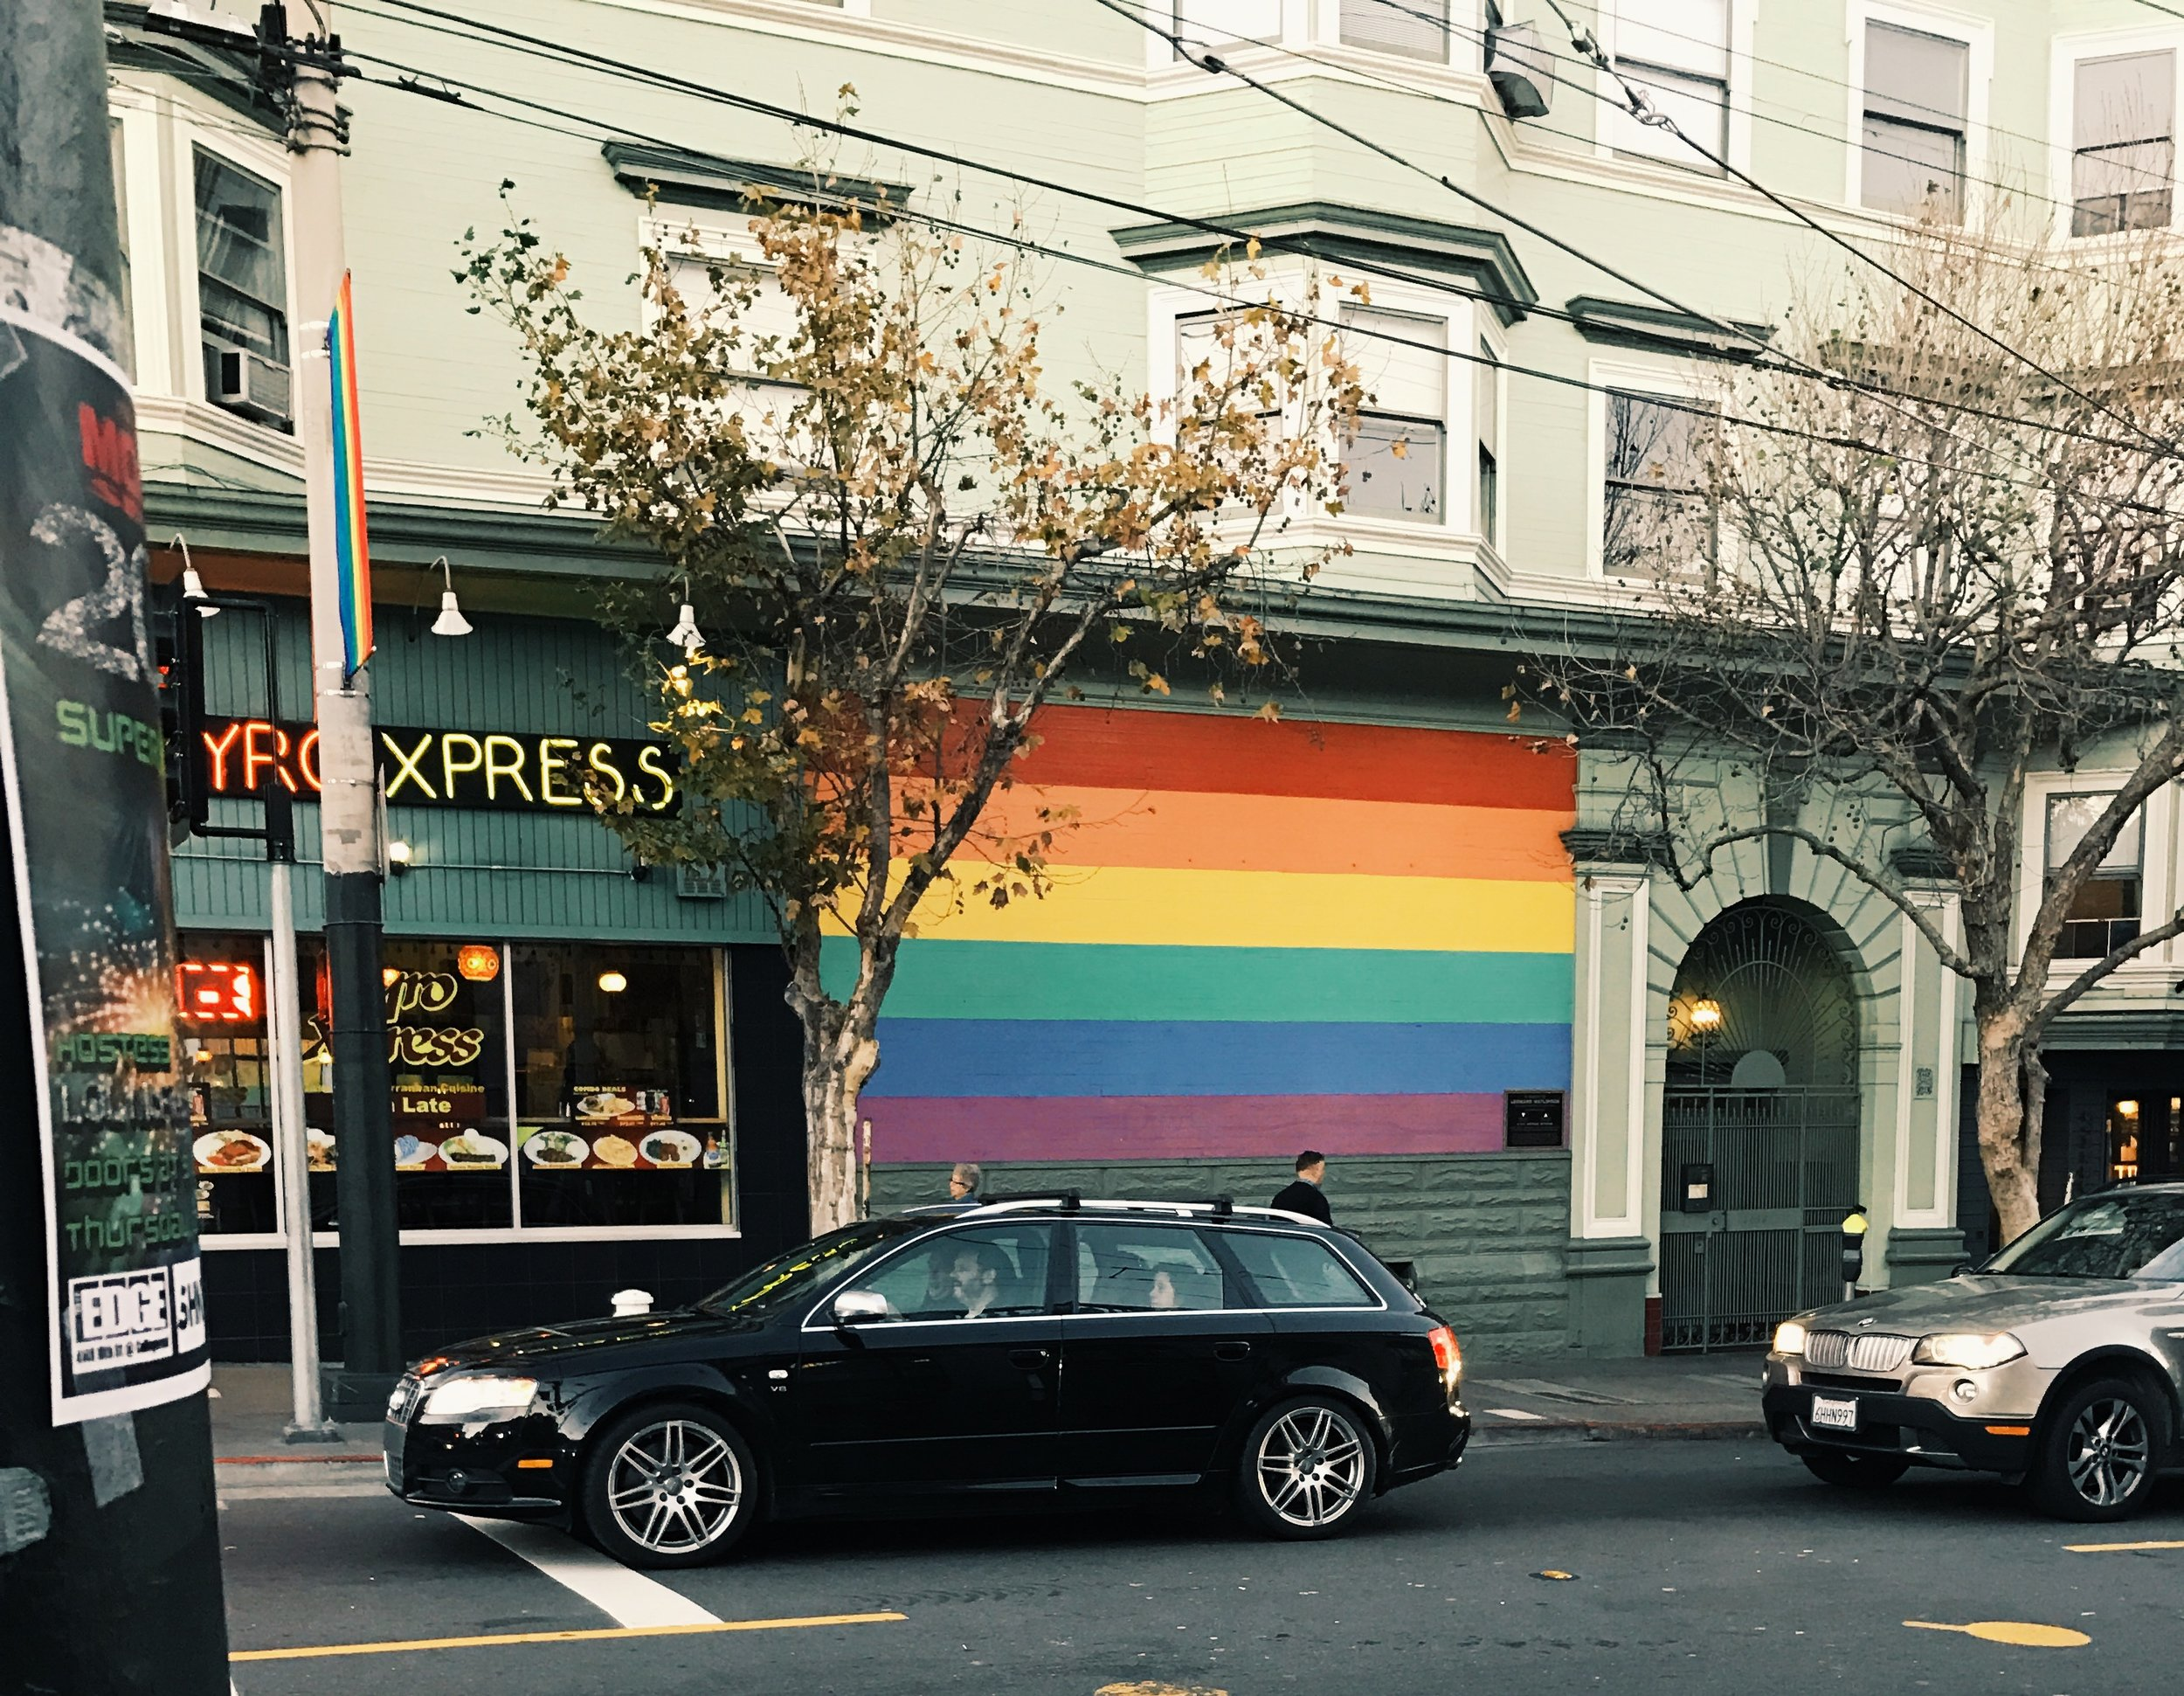 The Castro neighborhood in San Francisco, a favorite area of mine.